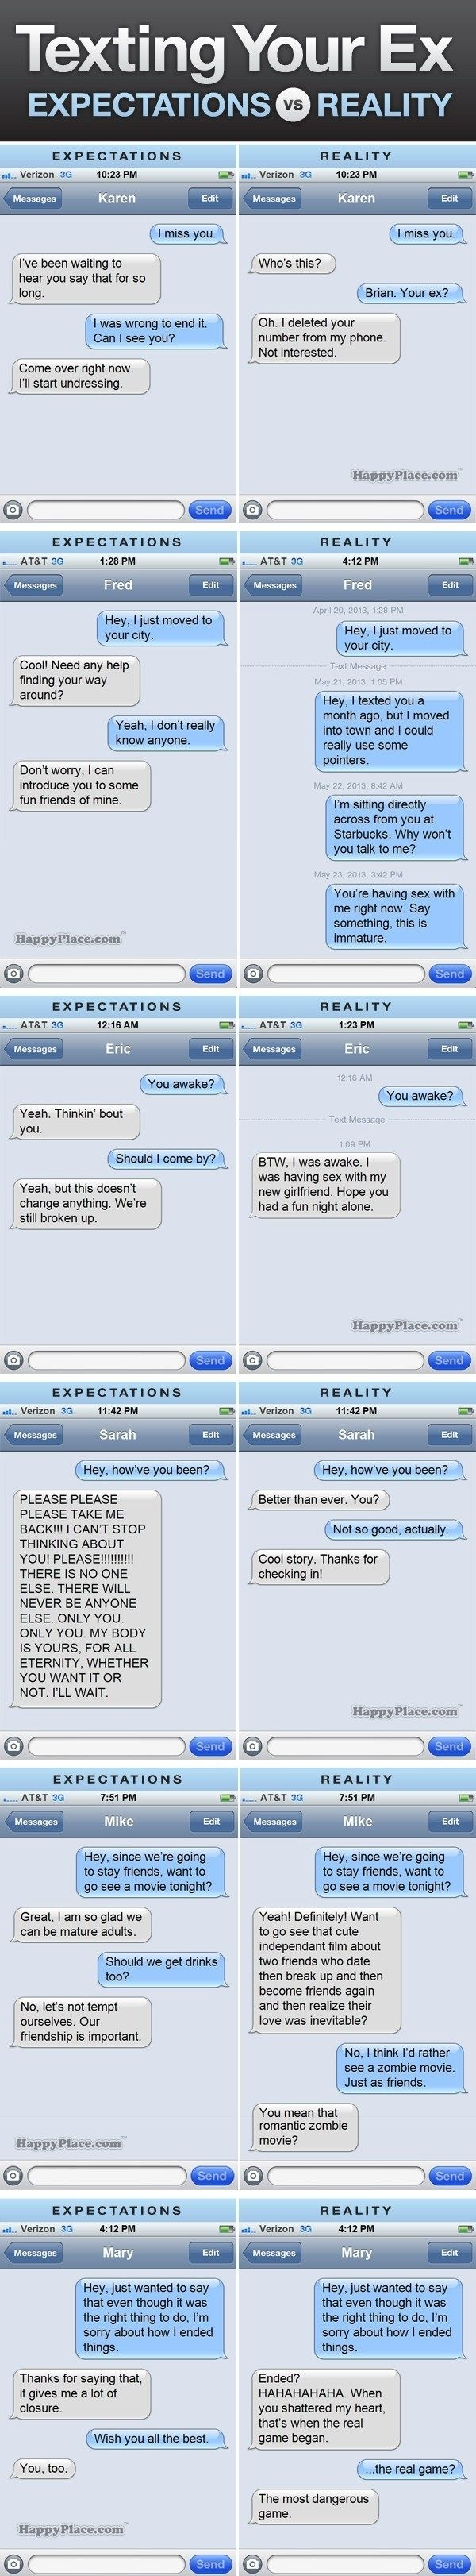 Texting your ex // funny pictures - funny photos - funny images - funny pics - funny quotes - #lol #humor #funnypictures